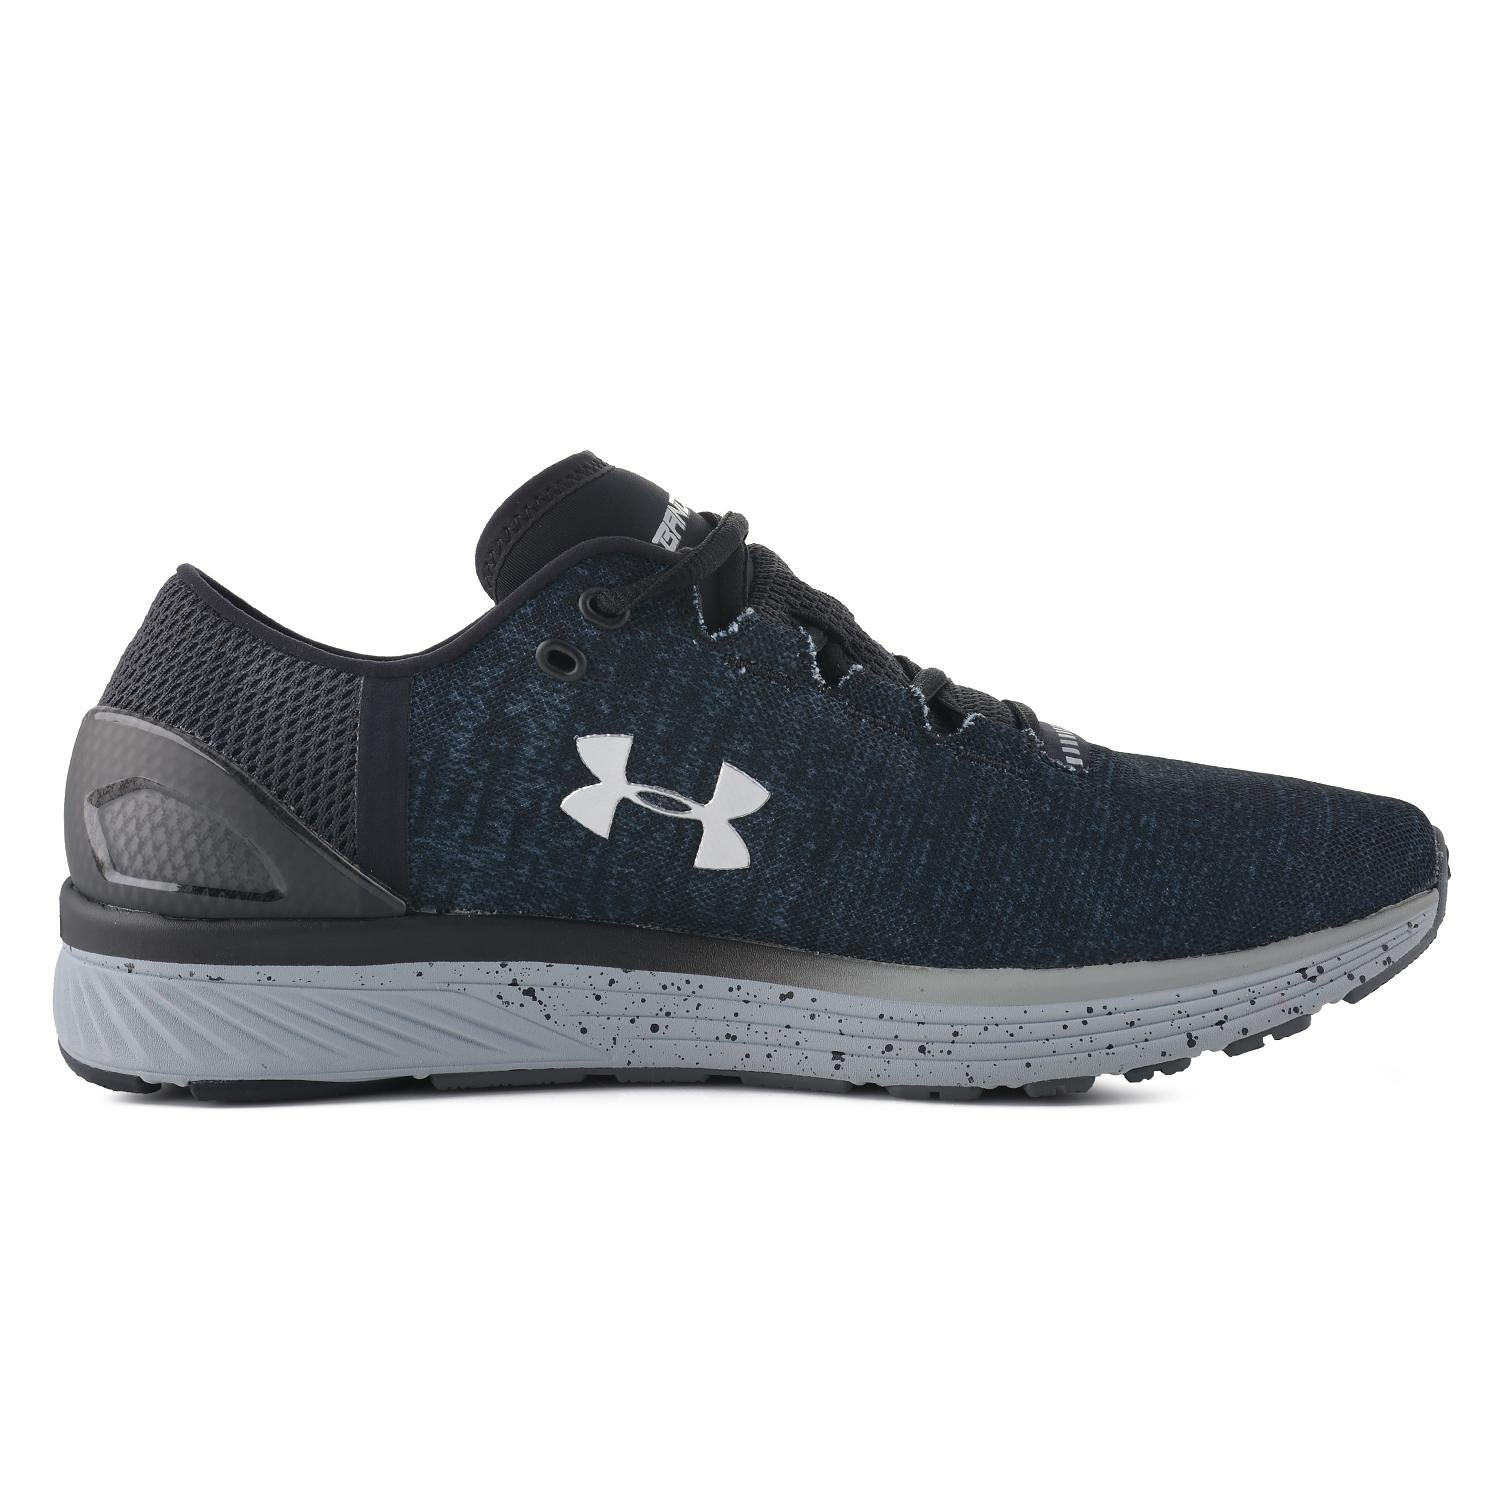 Under Armour Charged Bandit Bandit Bandit 3 - UOM d956ff